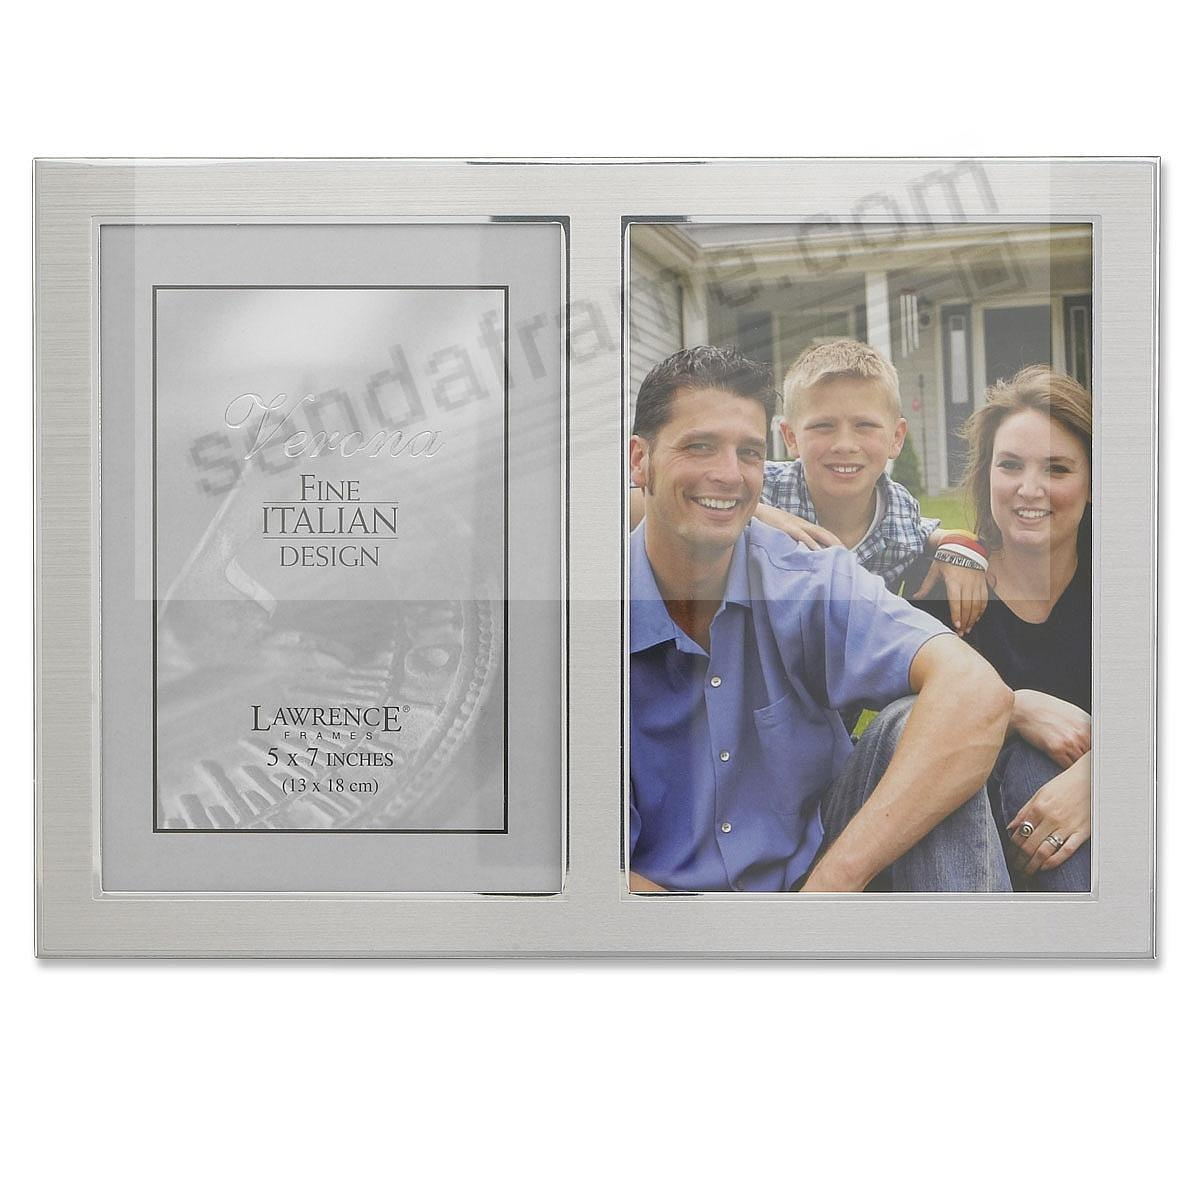 satin silverplate double 5x7 frame by lawrence - Double 5x7 Frame